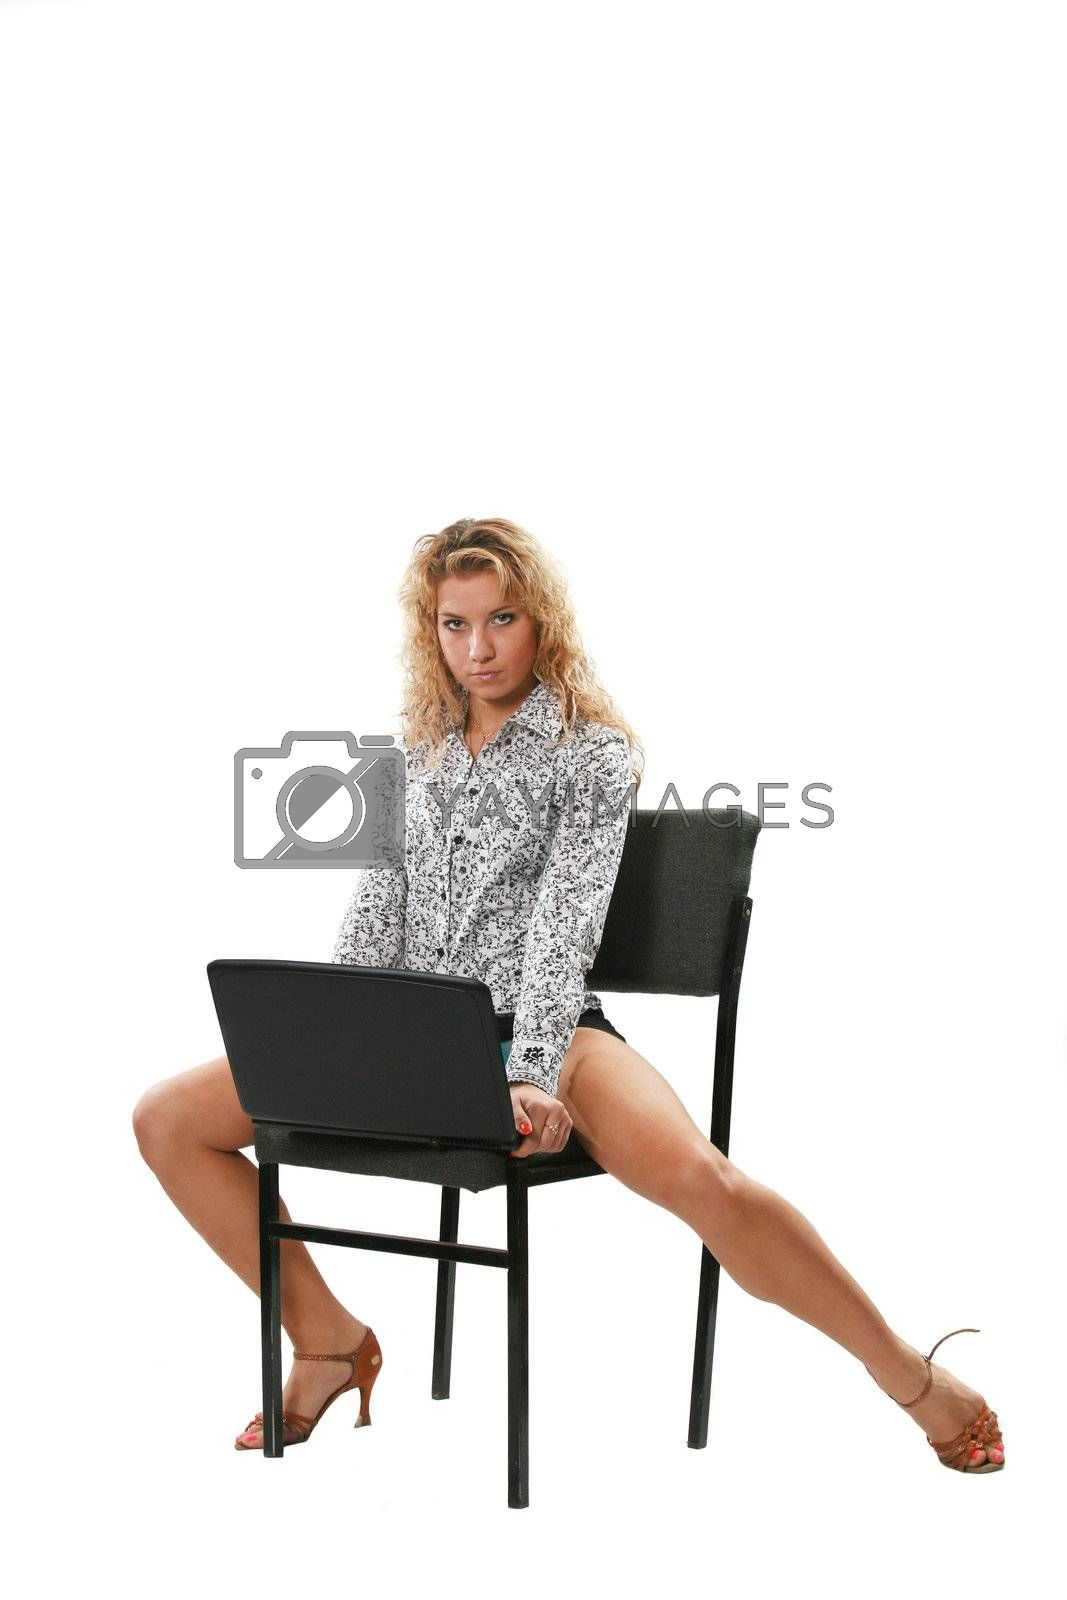 The sexual young woman with laptop on a white background